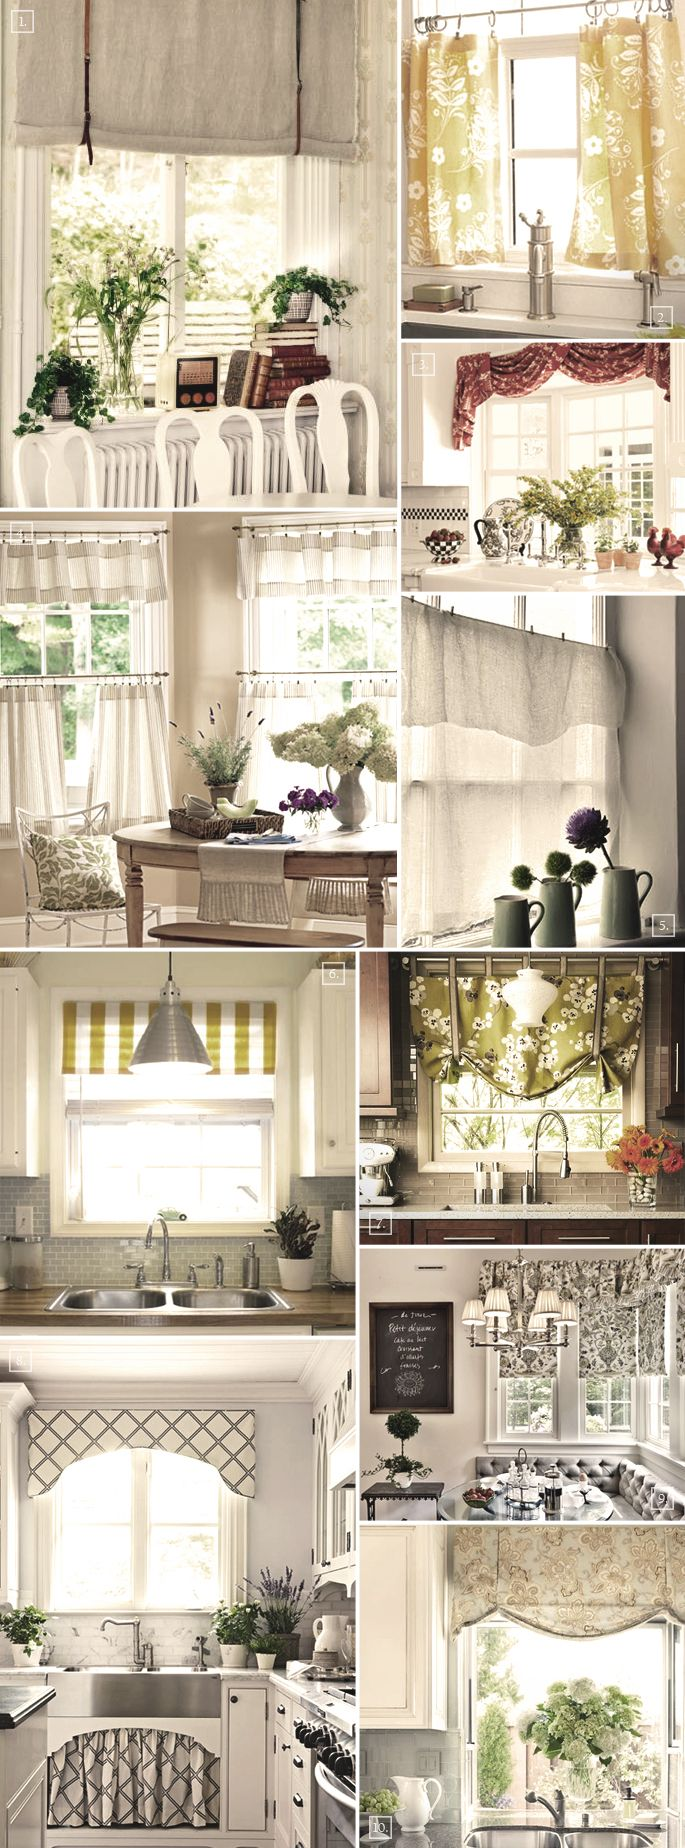 Decorating The Windows With These Kitchen Curtain Ideas   Home ...